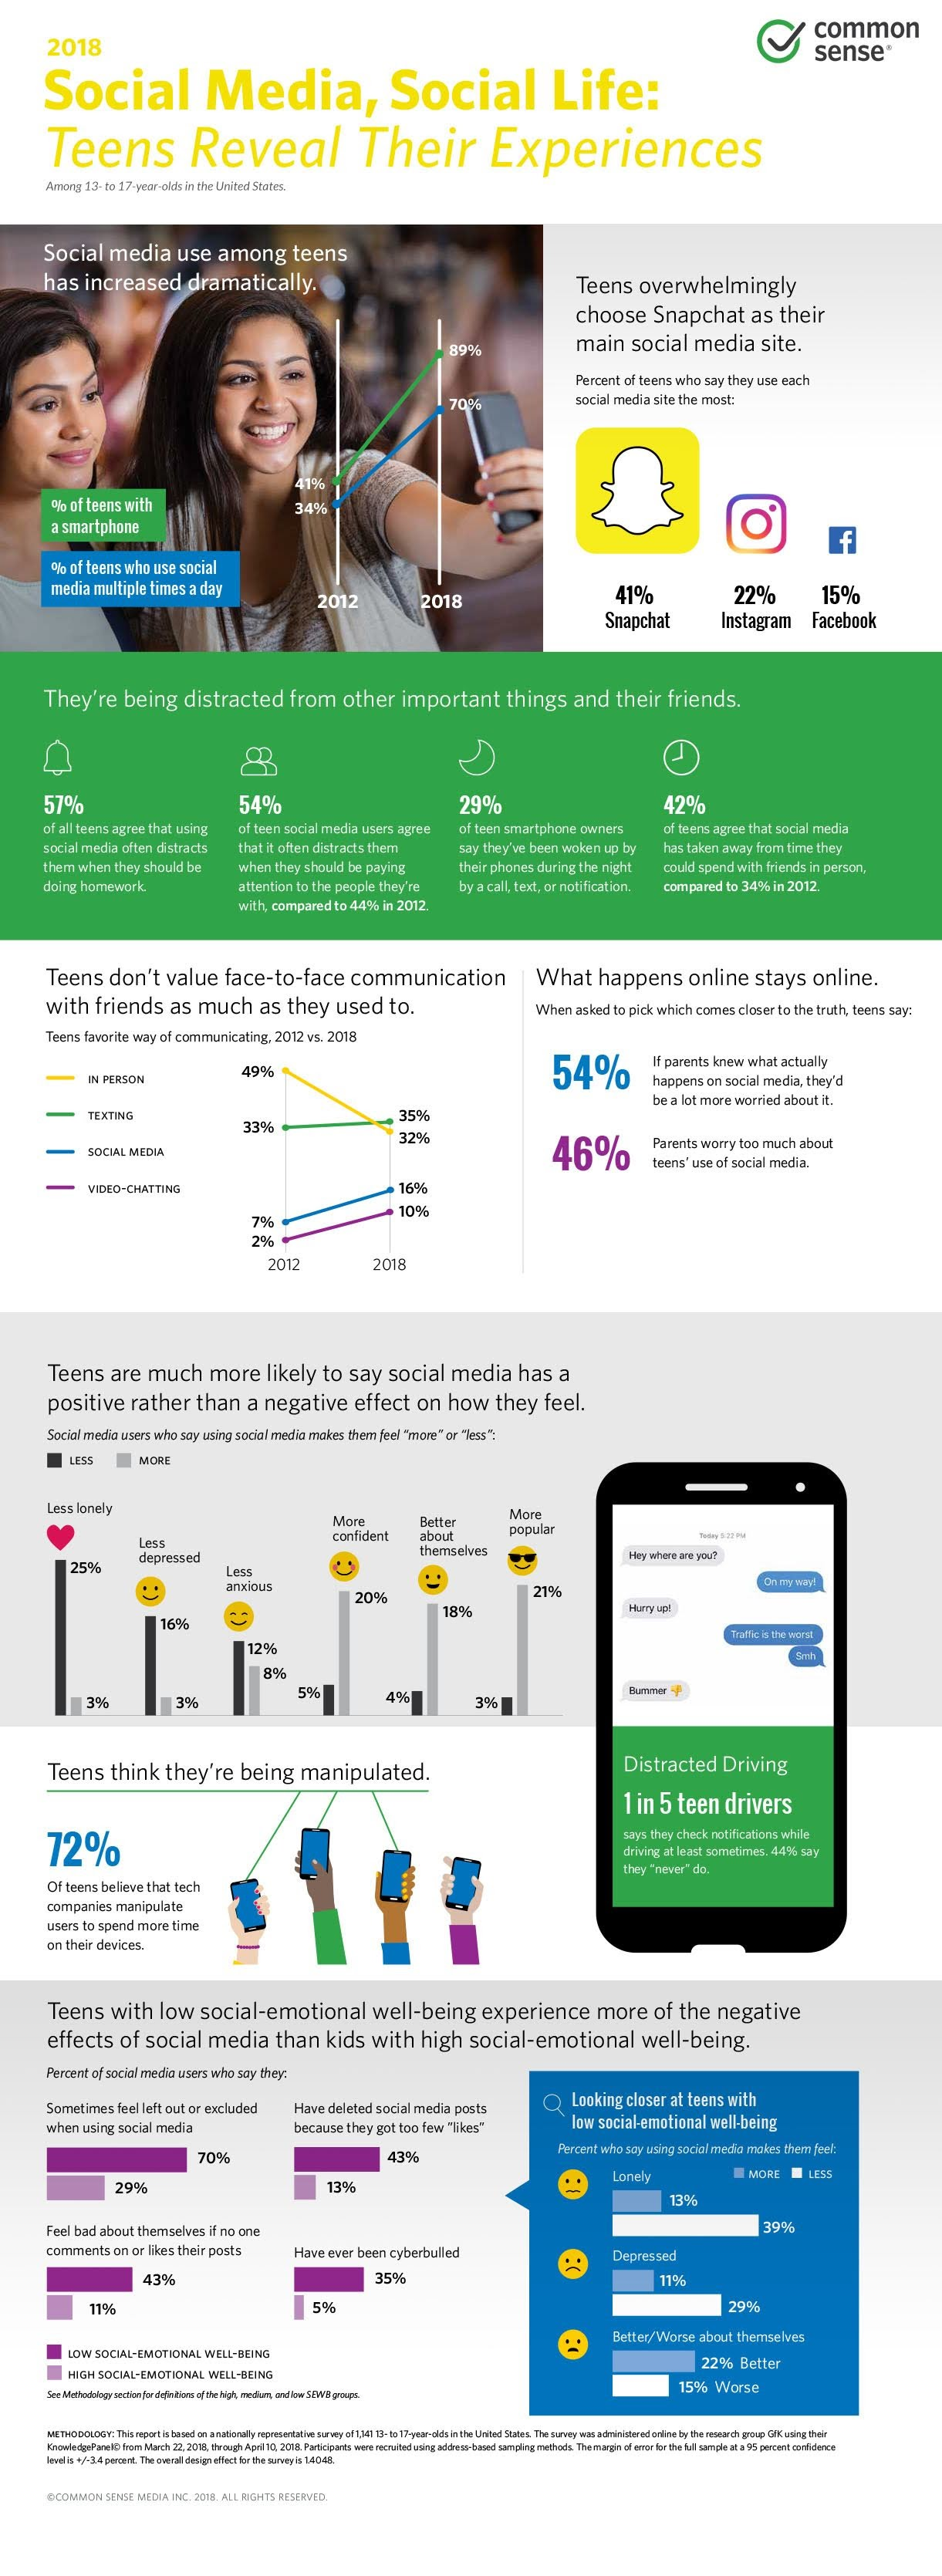 Social Media, Social Life: Teens Reveal Their Experiences [infographic]